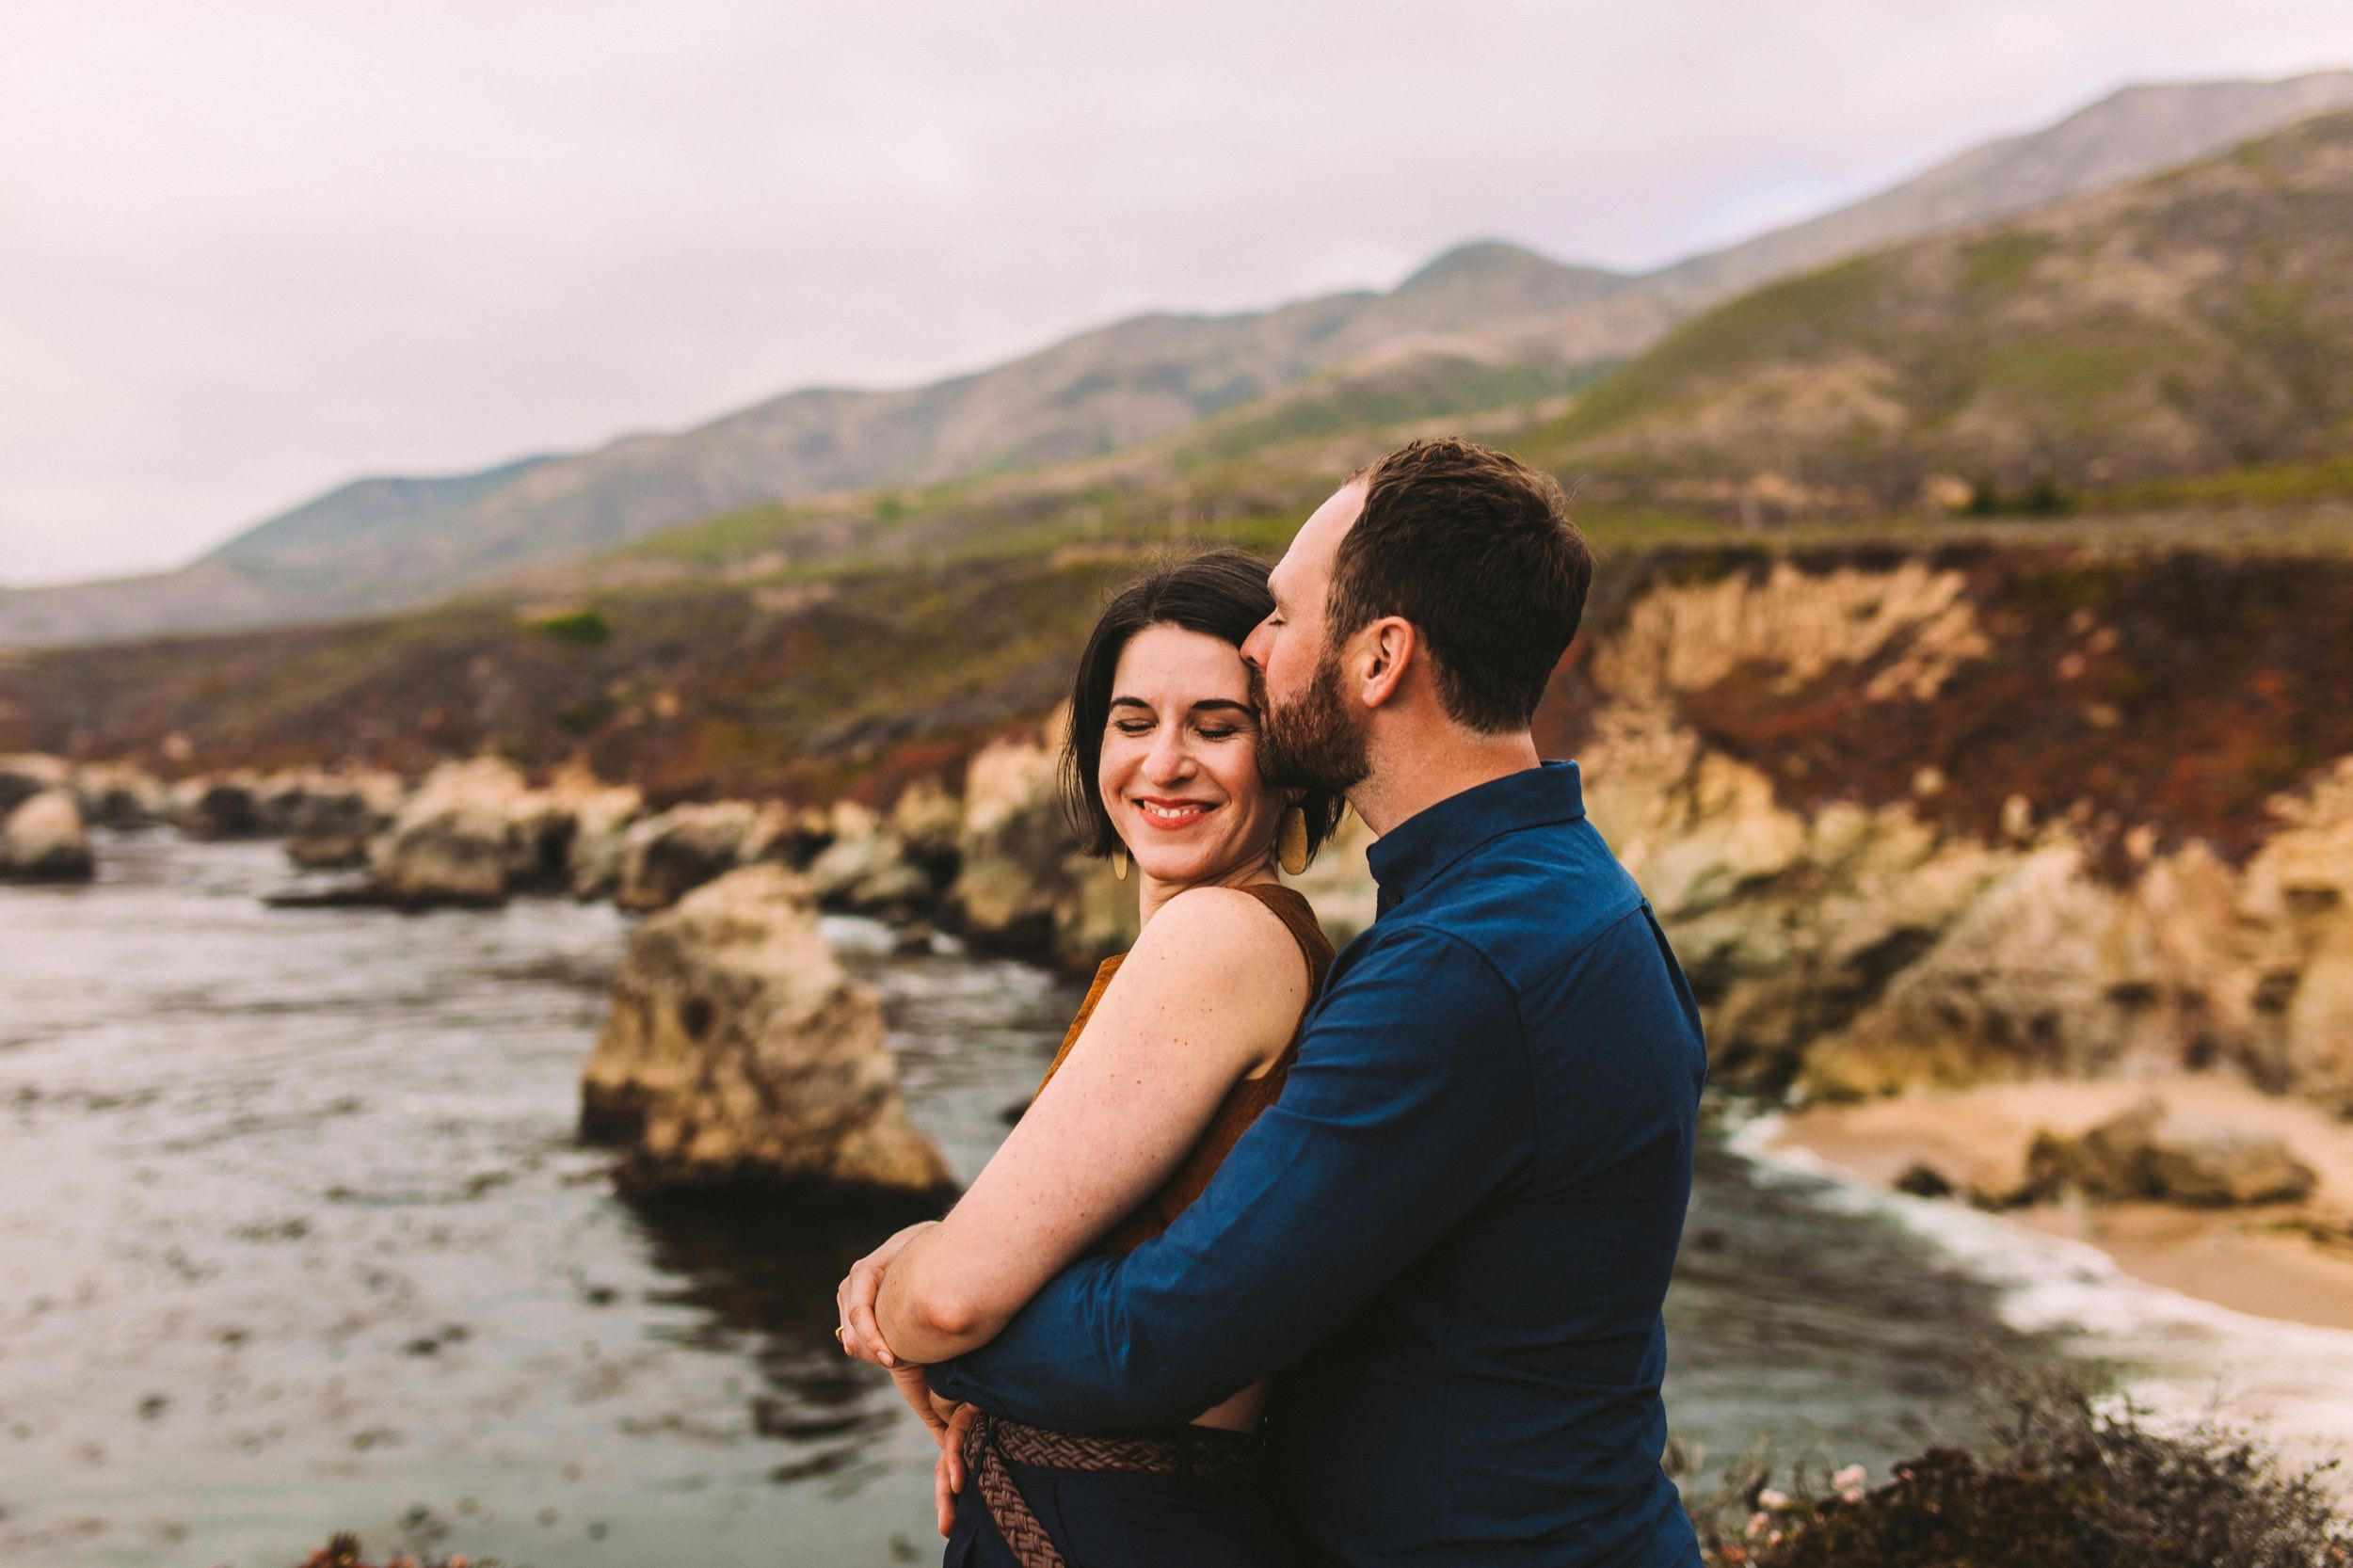 Garrapata State Park Engagement Photography Shoot-11.jpg